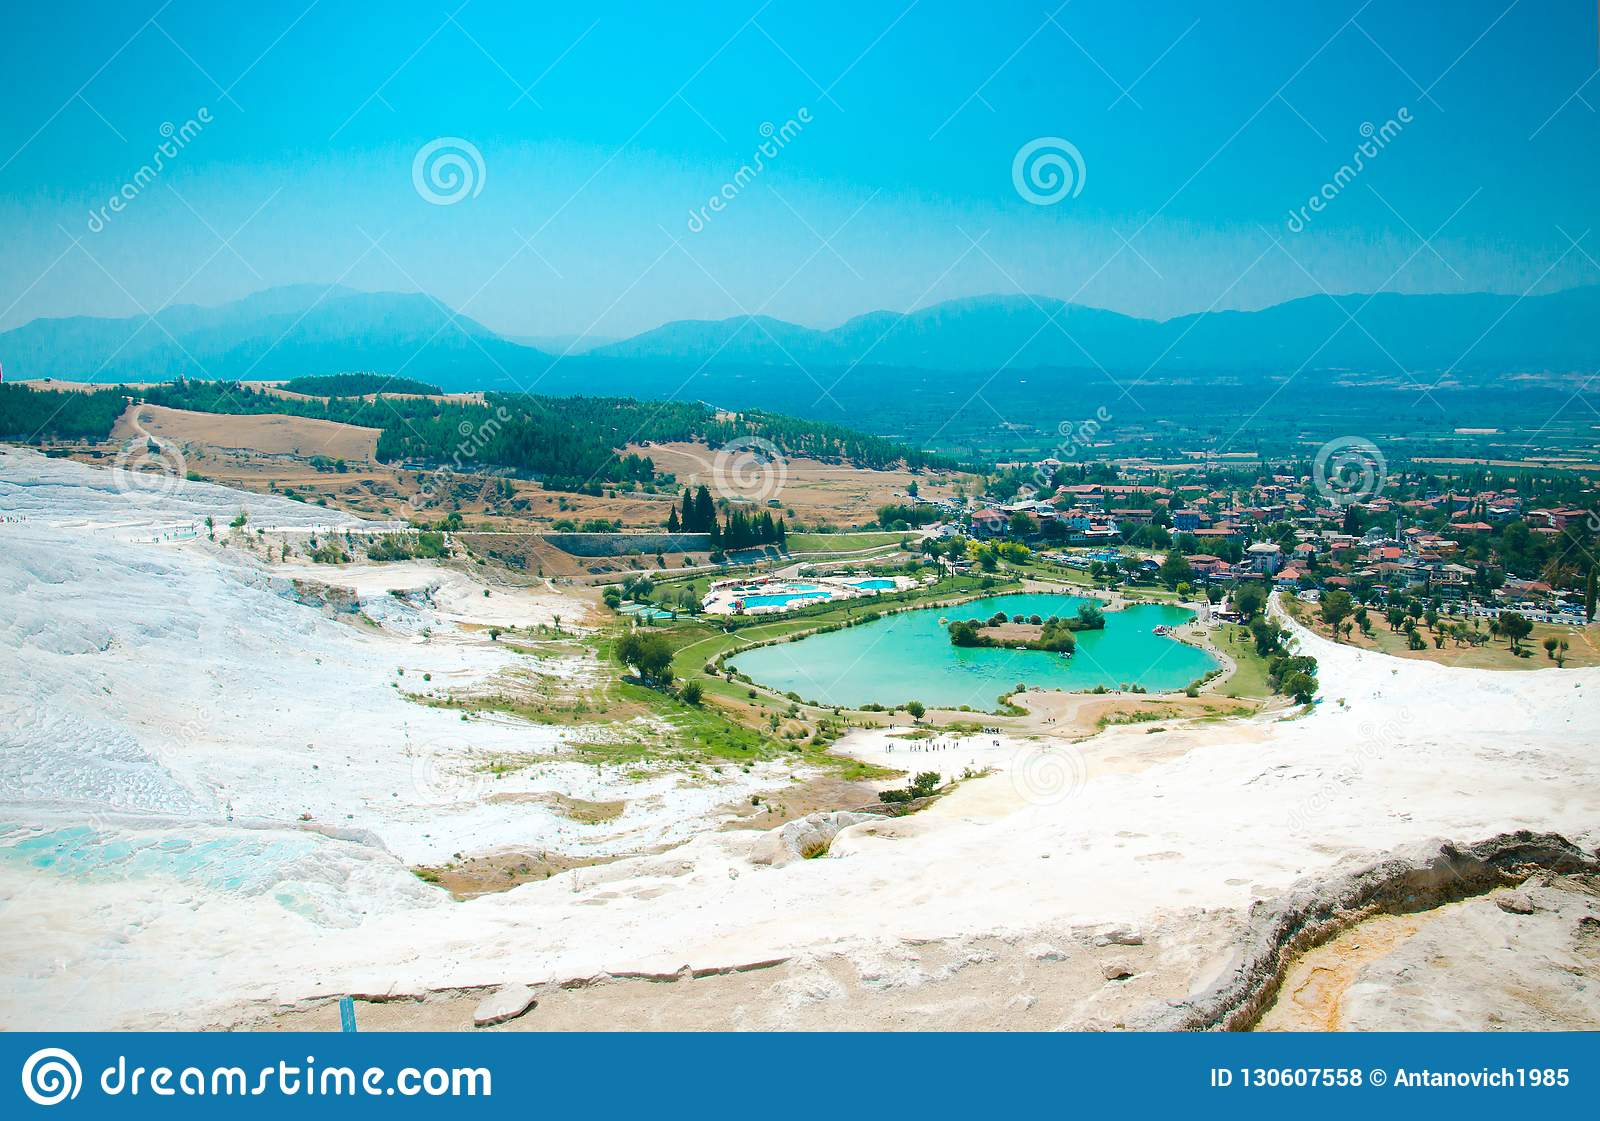 White travertine pools and terraces, turquoise lake, Pamukkale,